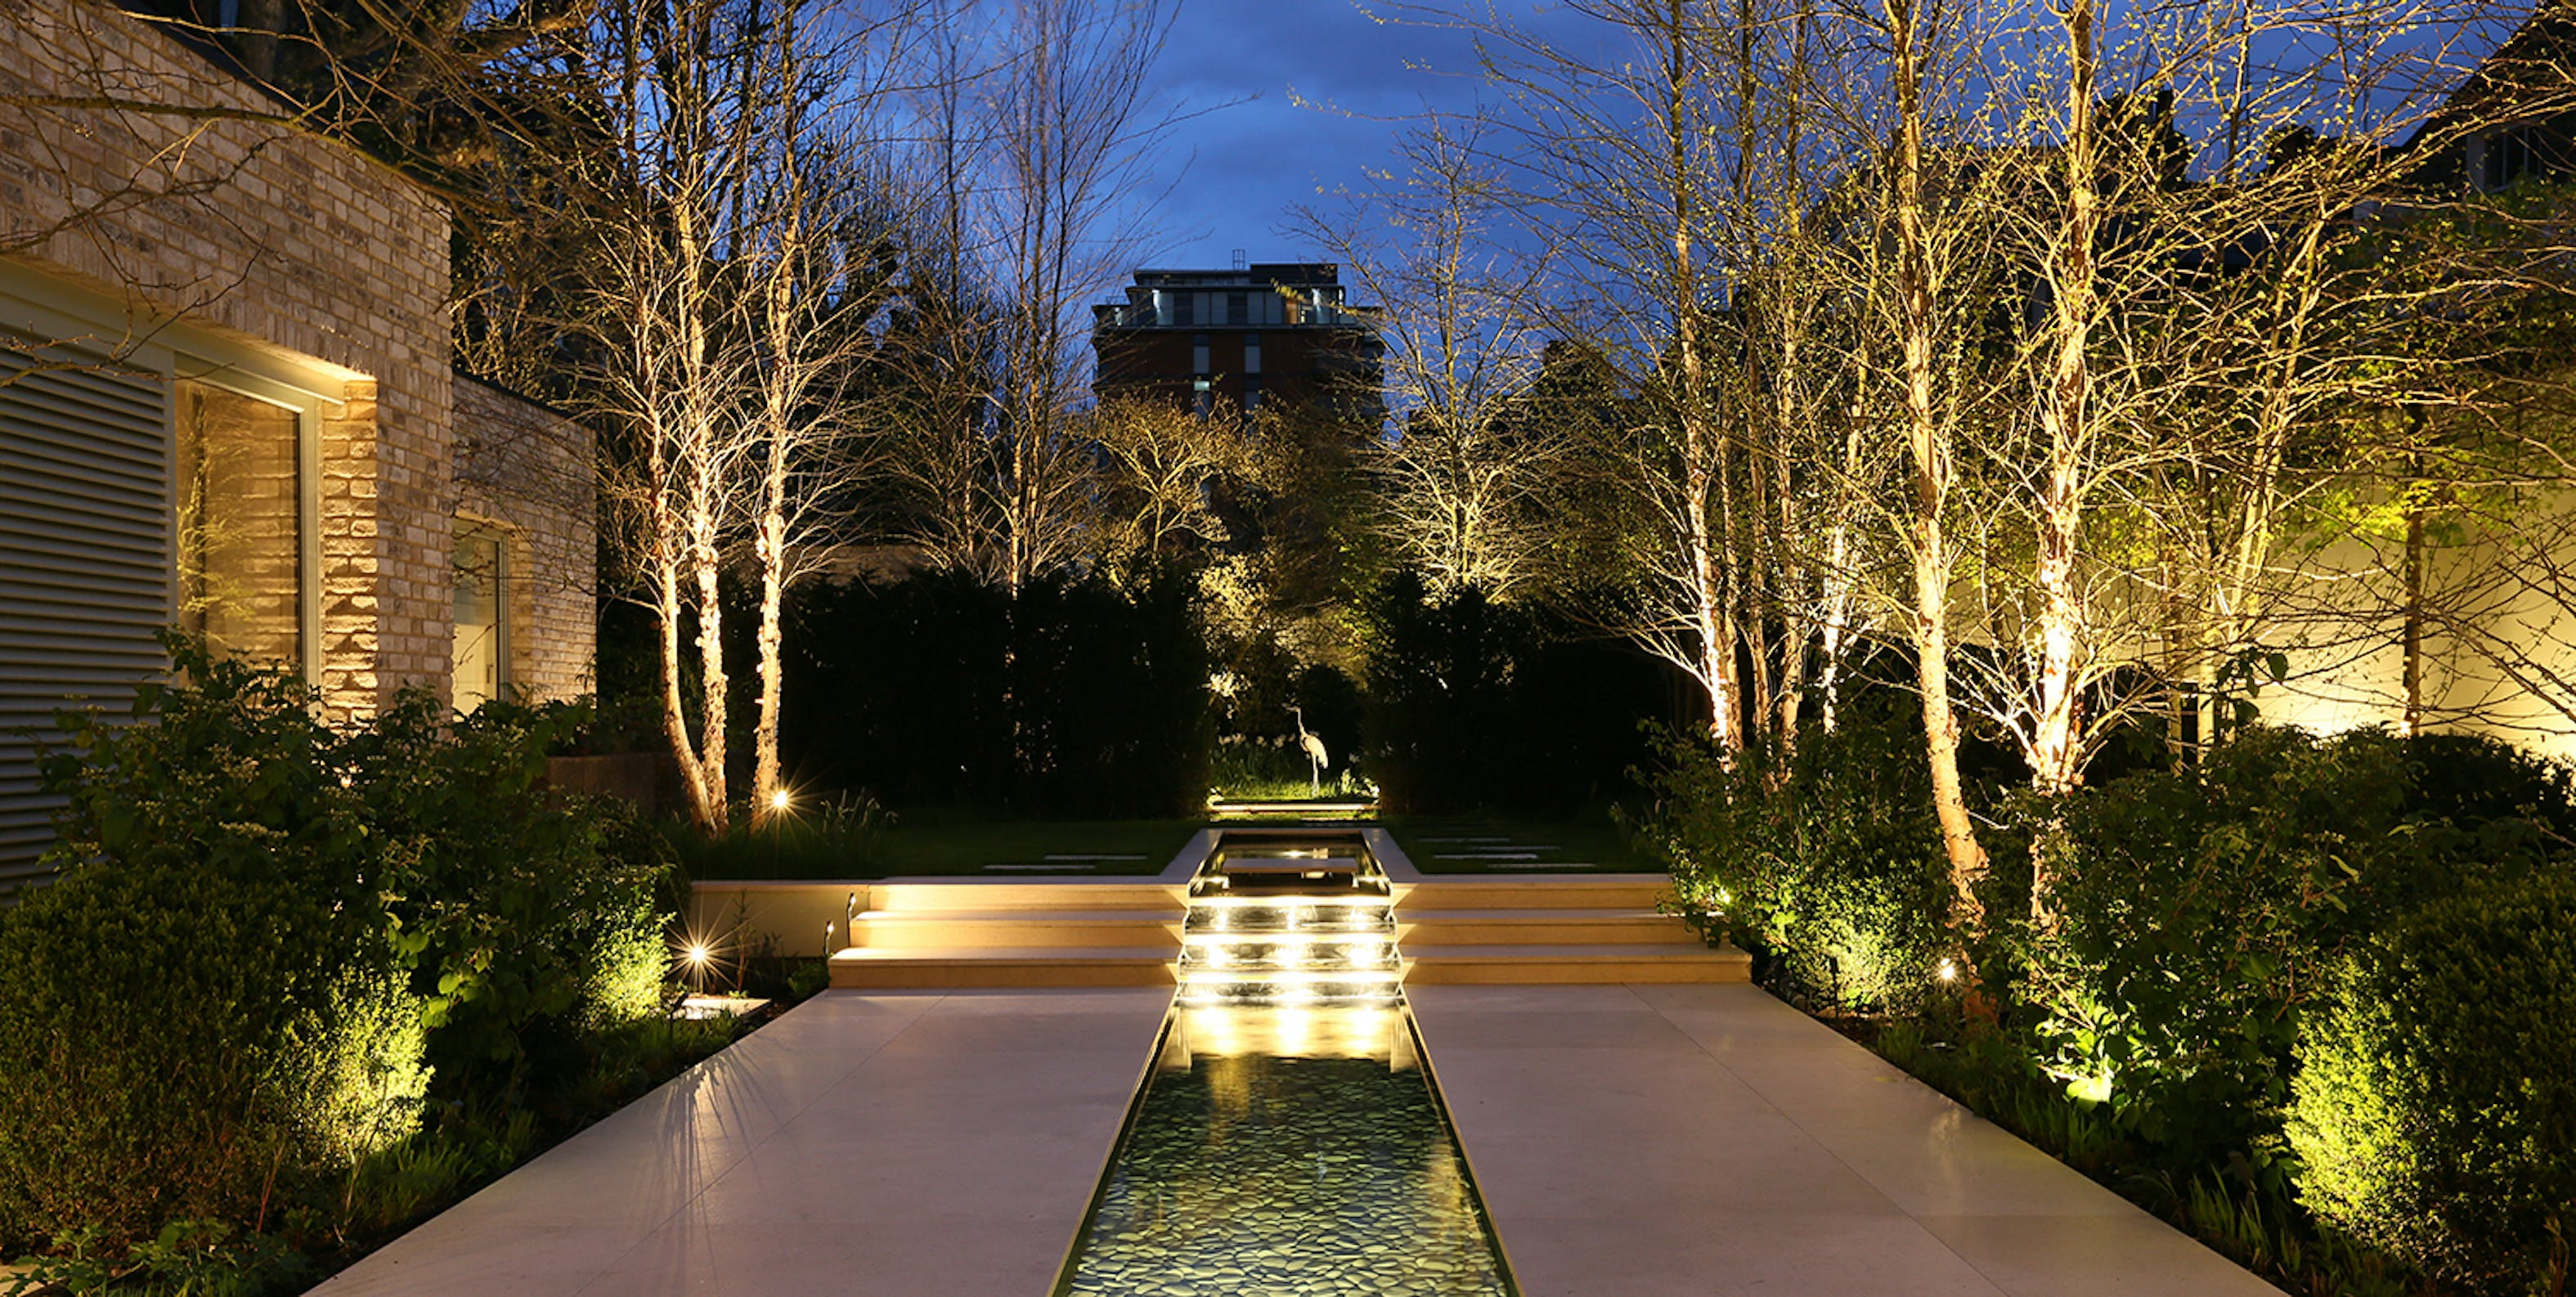 lighting a Garden with a view